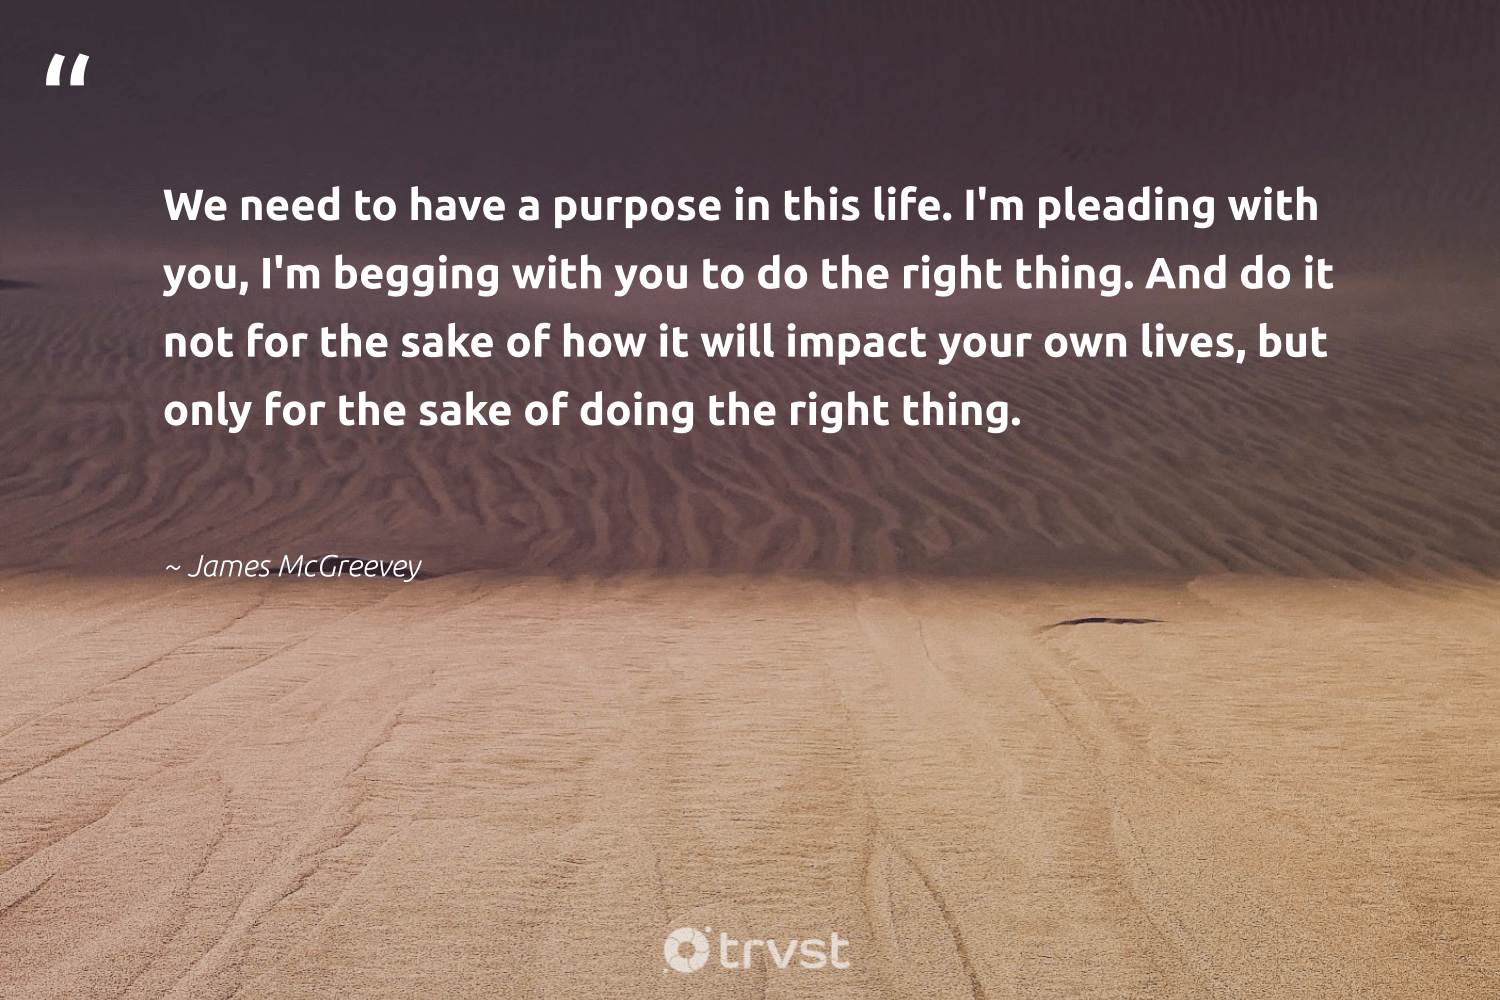 """We need to have a purpose in this life. I'm pleading with you, I'm begging with you to do the right thing. And do it not for the sake of how it will impact your own lives, but only for the sake of doing the right thing.""  - James McGreevey #trvst #quotes #impact #dotherightthing #purpose #findpurpose #giveback #mindset #dogood #purposedriven #socialchange #togetherwecan"